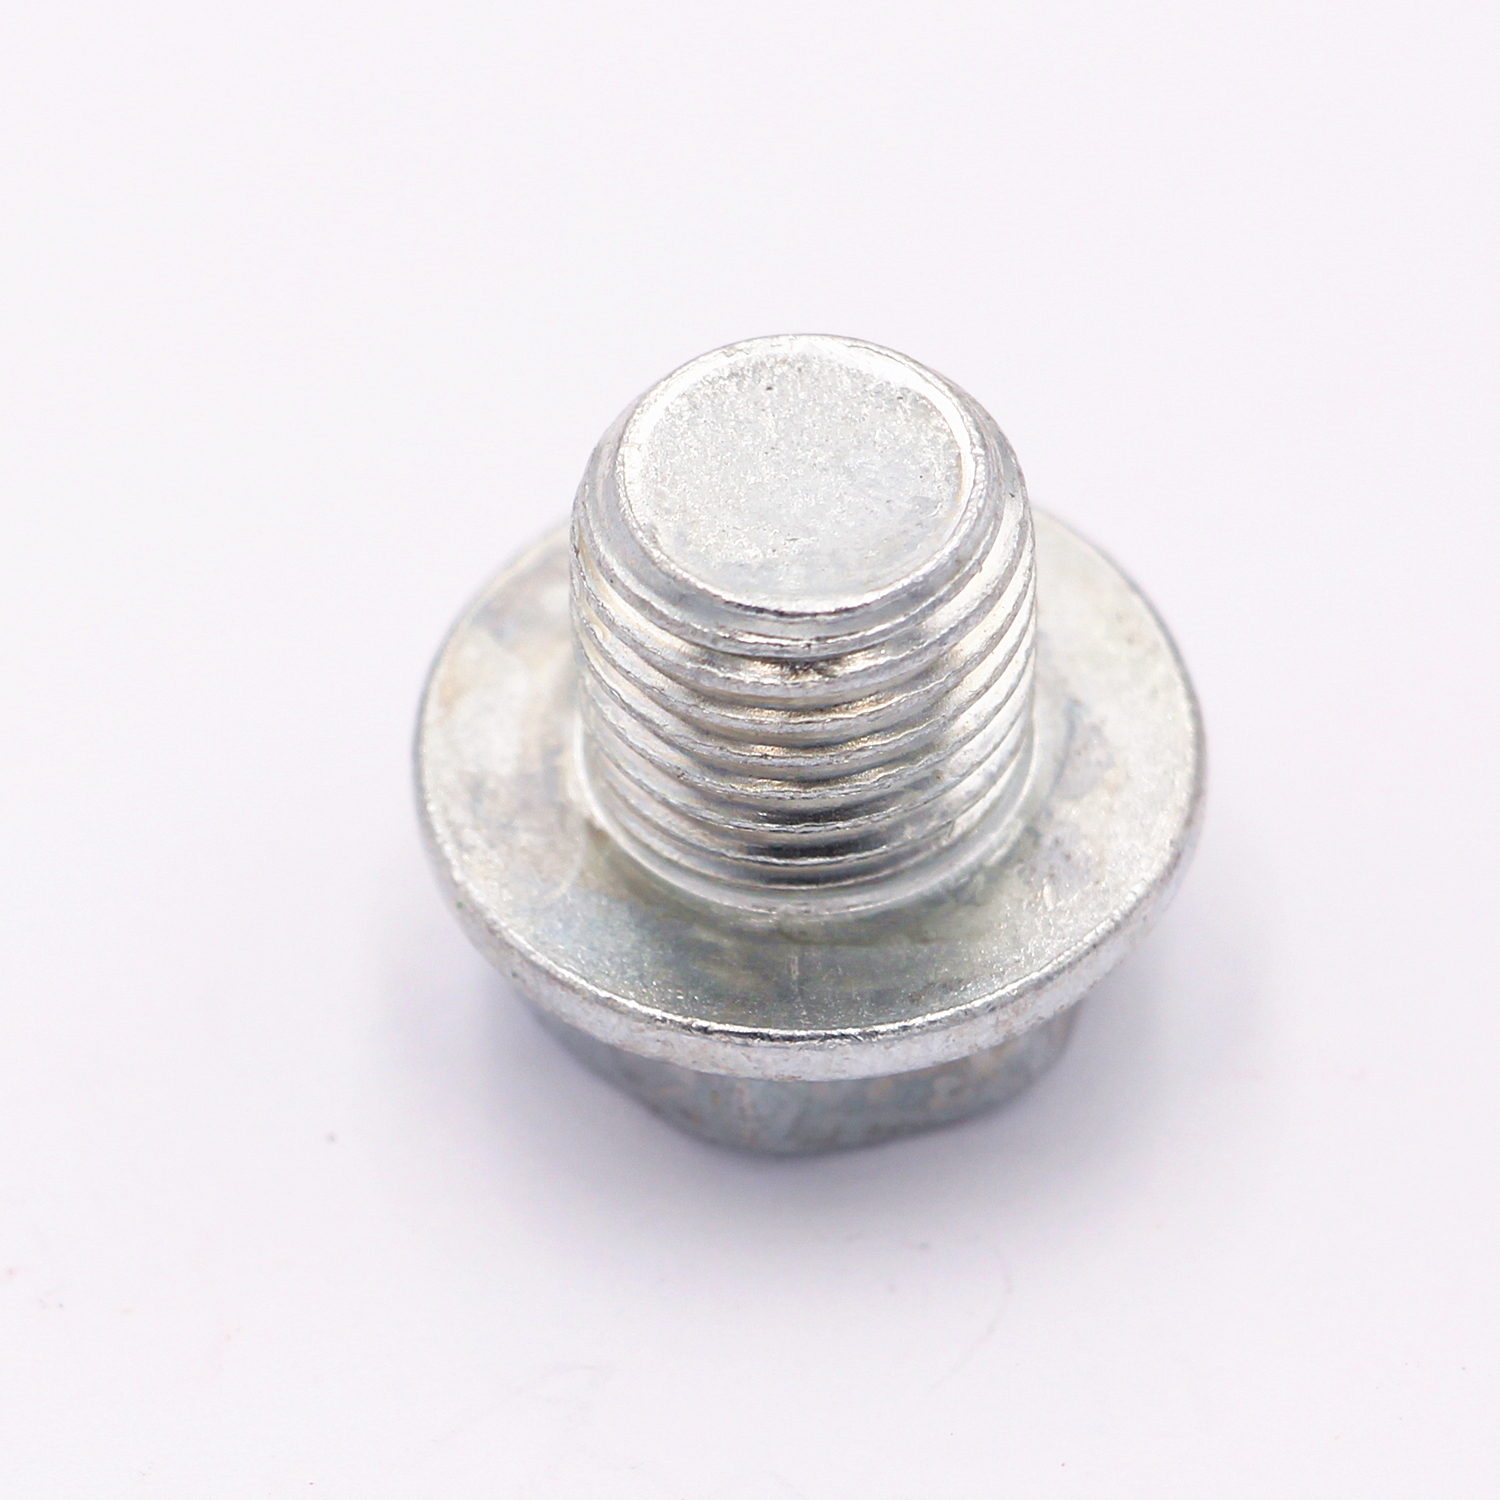 New OEM Engine Oil Pan Drain Plug With Washer Fits For